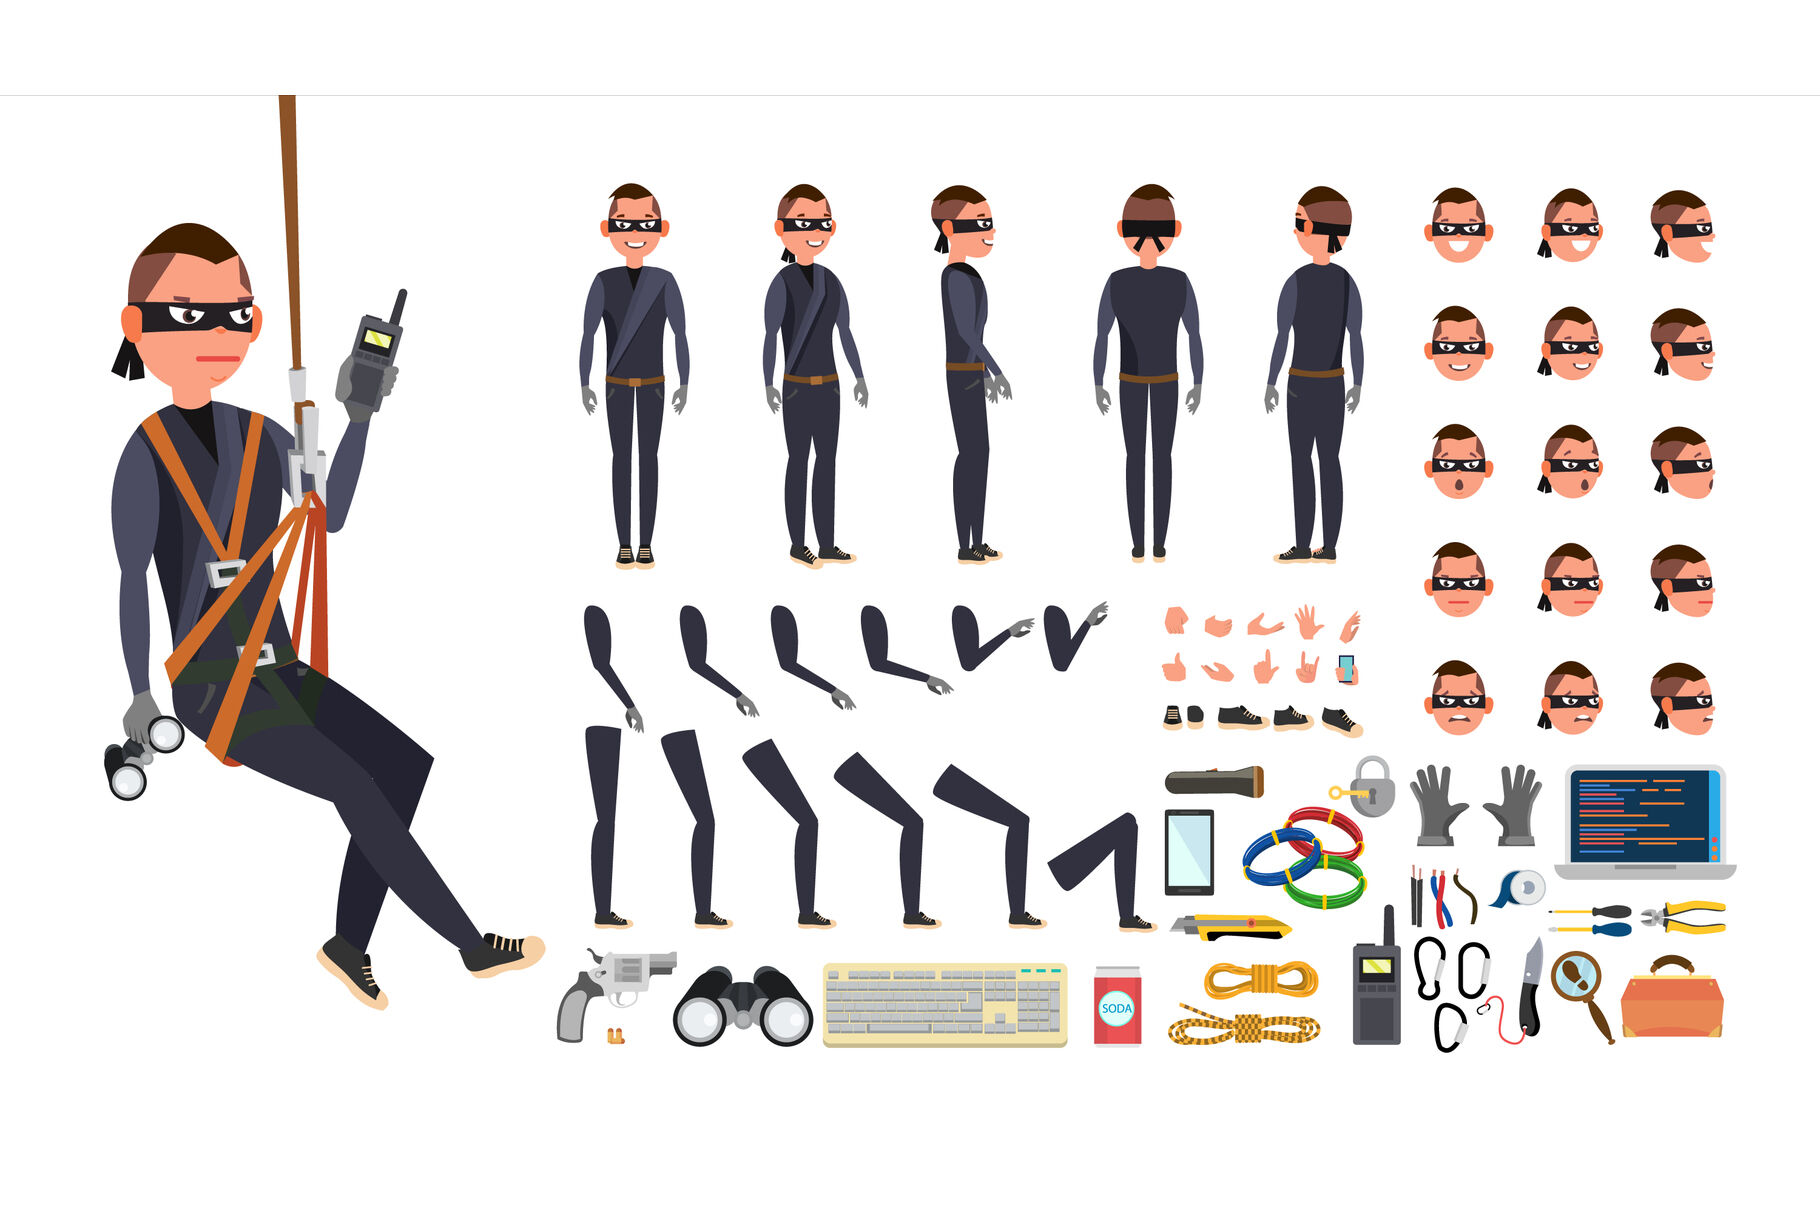 Thief Hacker Vector Animated Character Creation Set Black Mask Tools And Equipment Full Length Front Side Back View Accessories Poses Face Emotions Gestures Isolated Flat Illustration By Pikepicture Thehungryjpeg Com